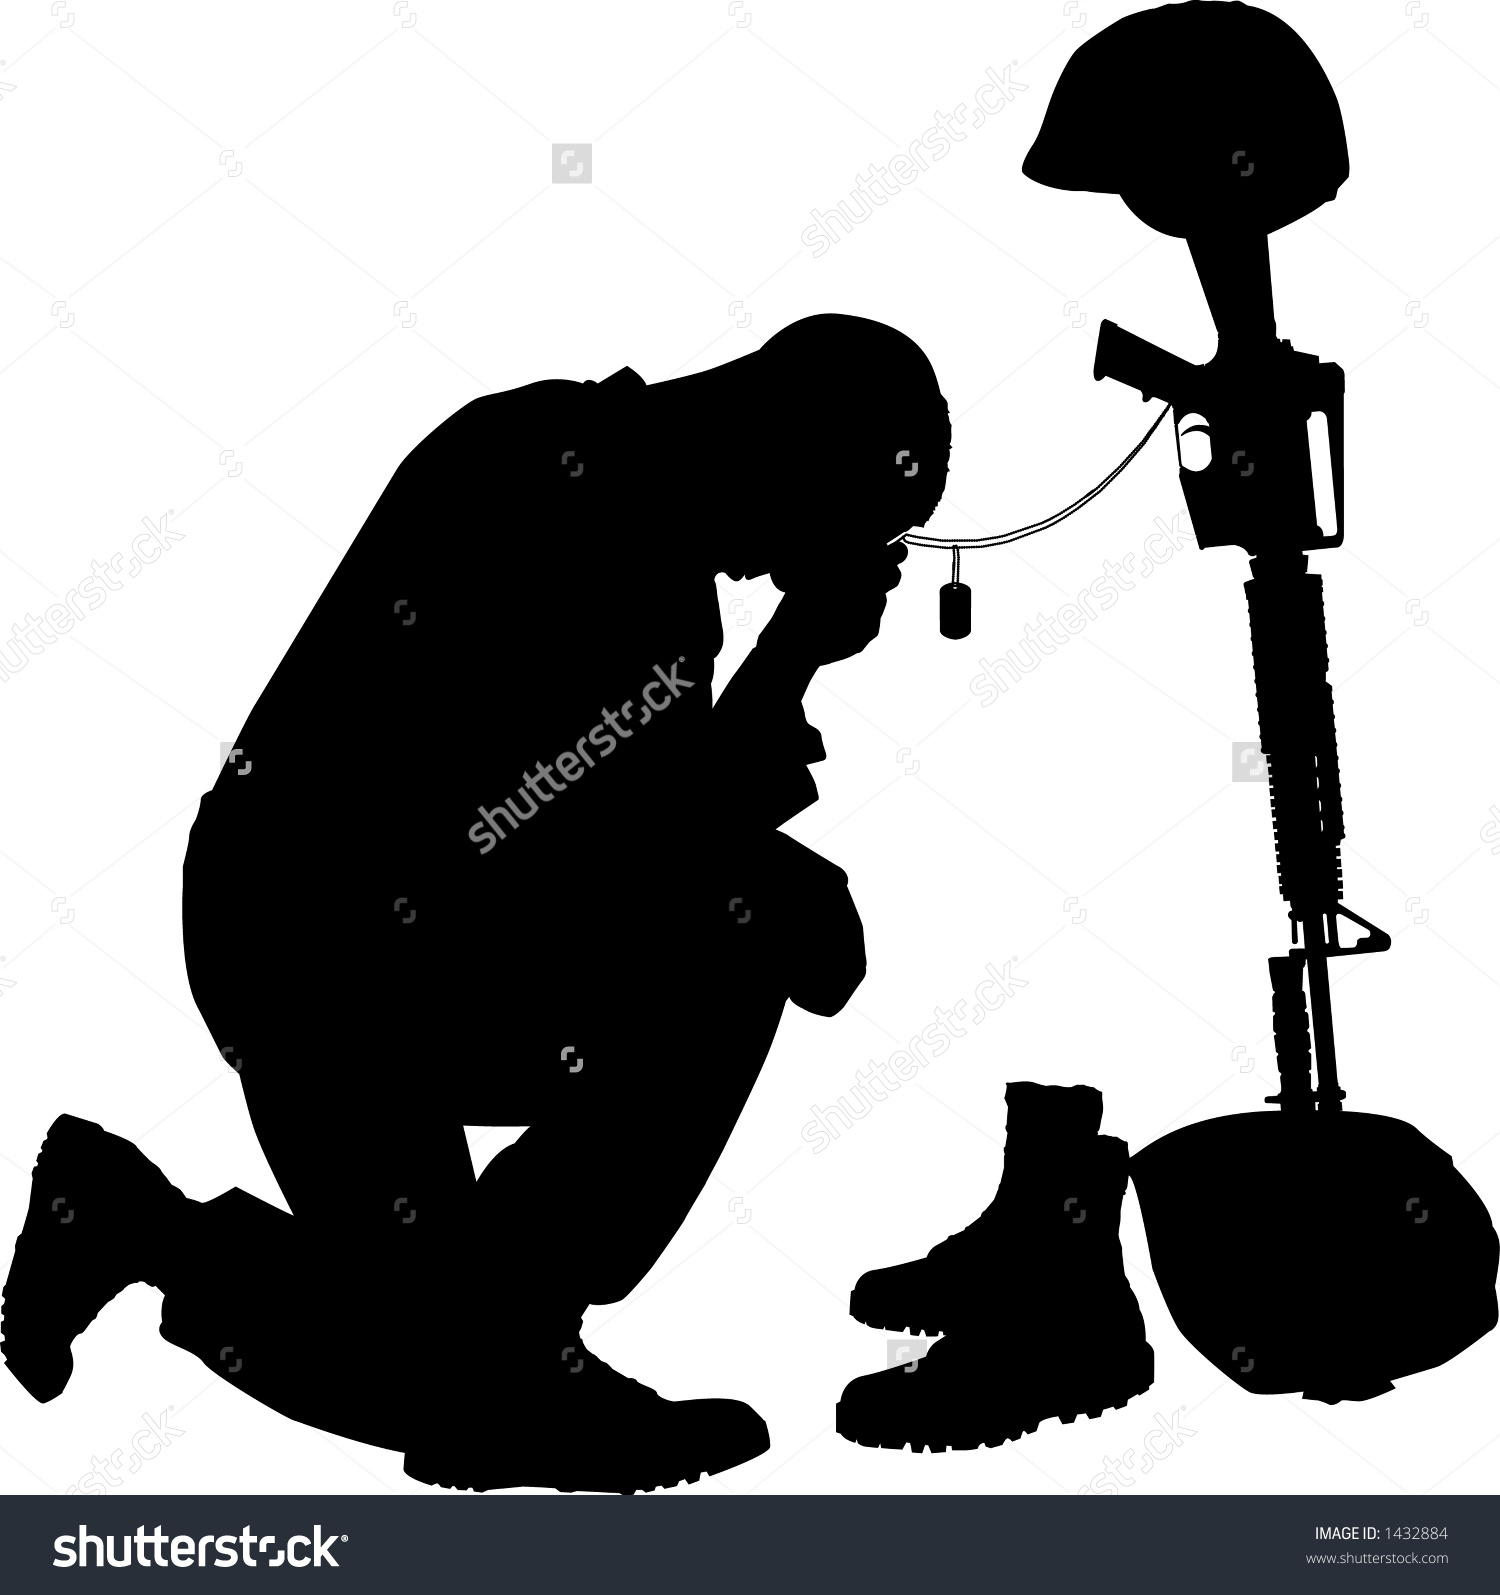 soldier salute silhouette vector at getdrawings com free for rh getdrawings com soldier vector silhouette soldier vector art